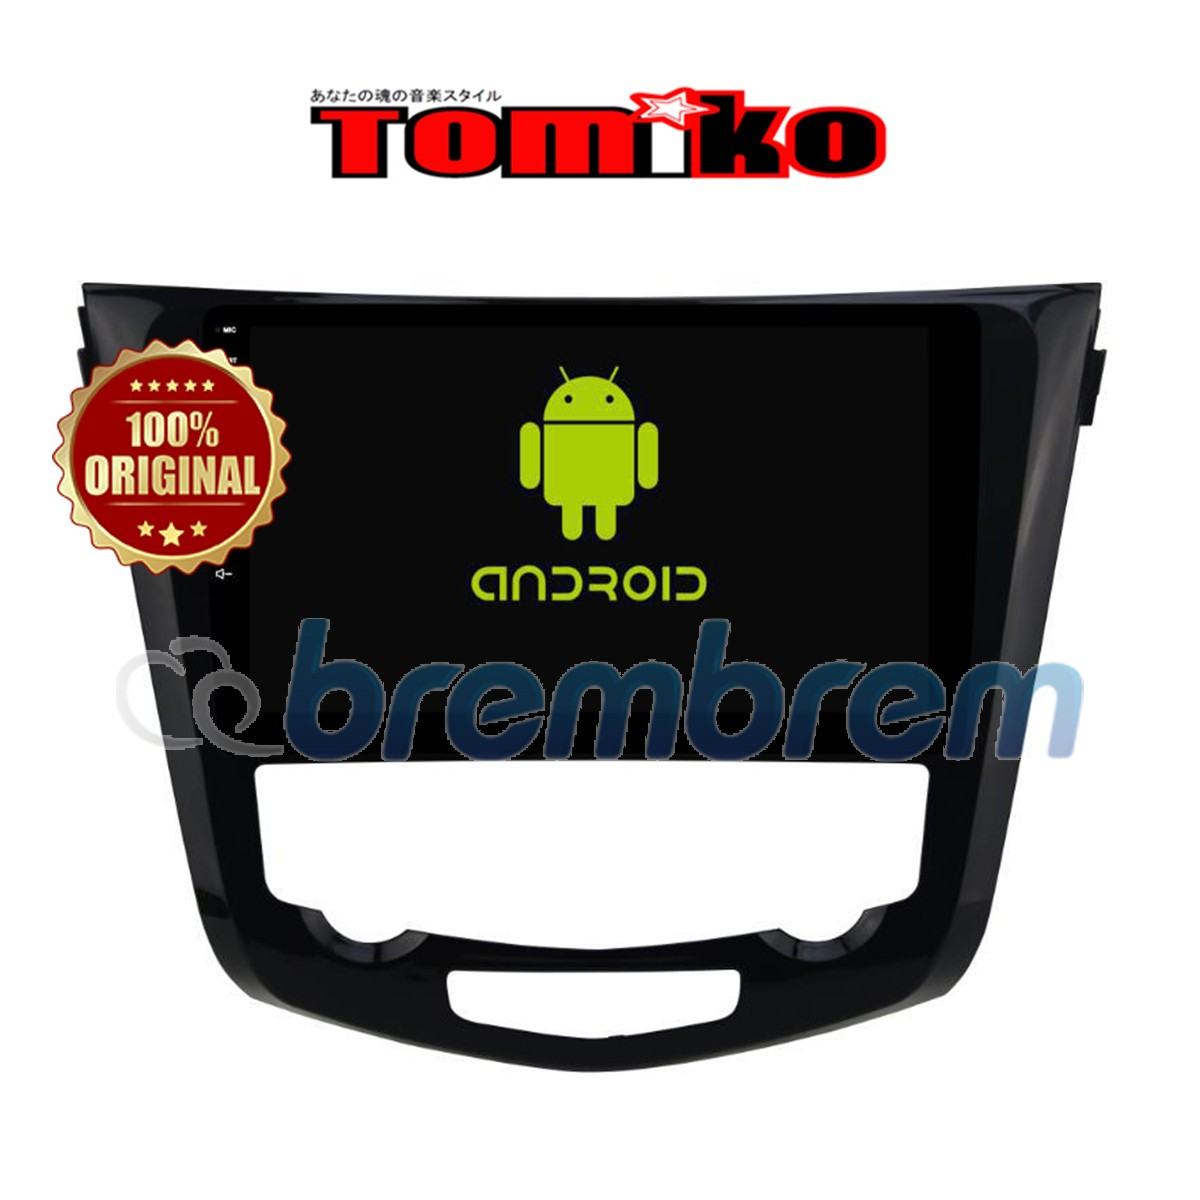 TOMIKO ANDROID 4G LTE NEW NISSAN XTRAIL 2500 CC 10 INCH - HEADUNIT OEM